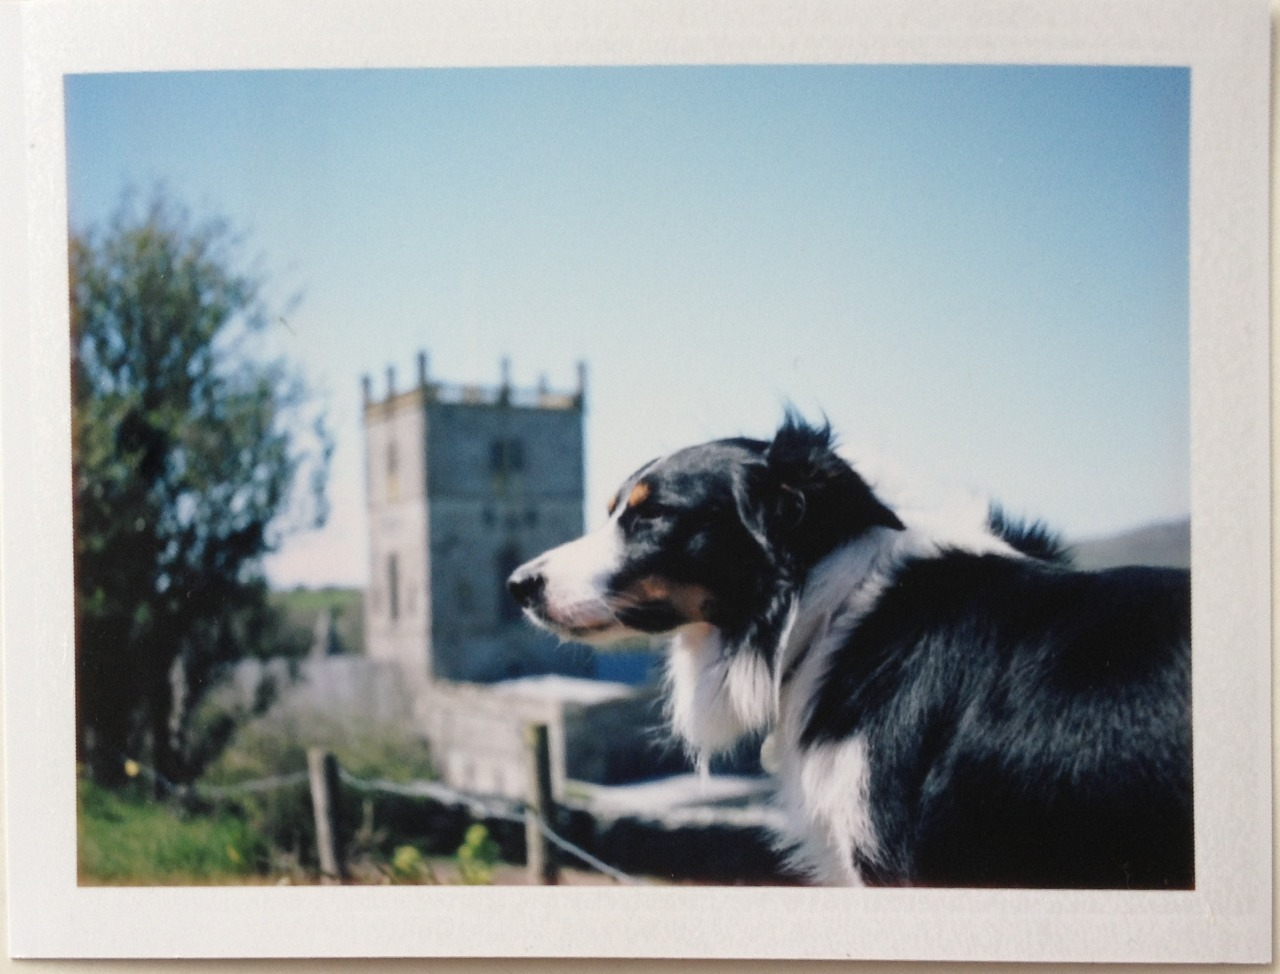 Bodhi in front of the cathedral in St David's - Wales